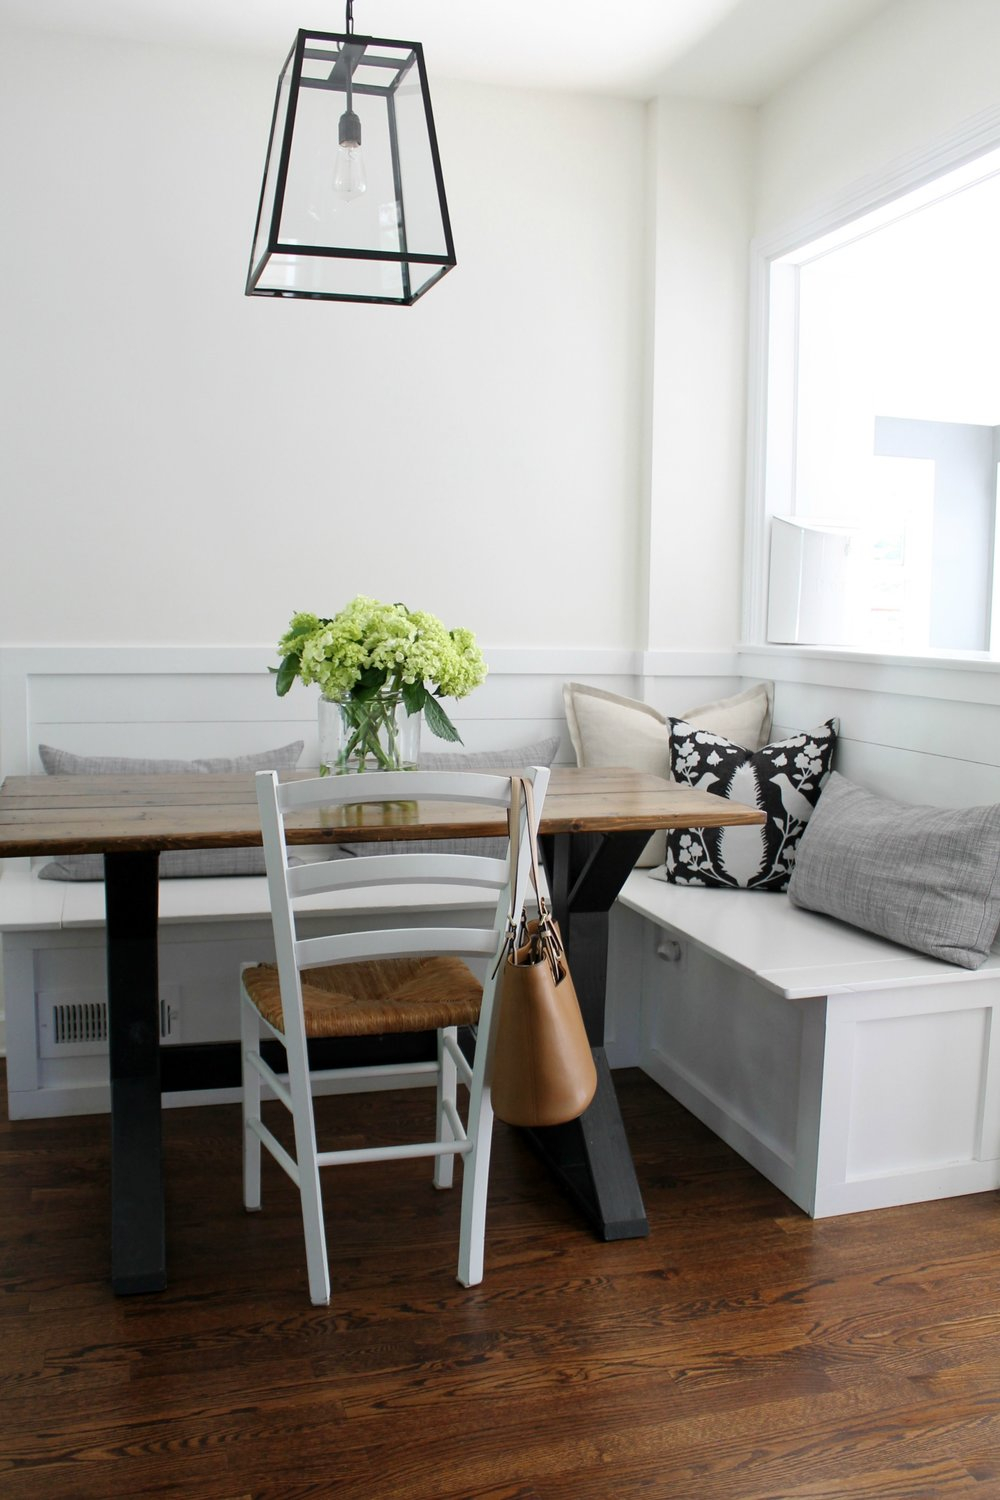 wall color: Benjamin Moore Cloud White